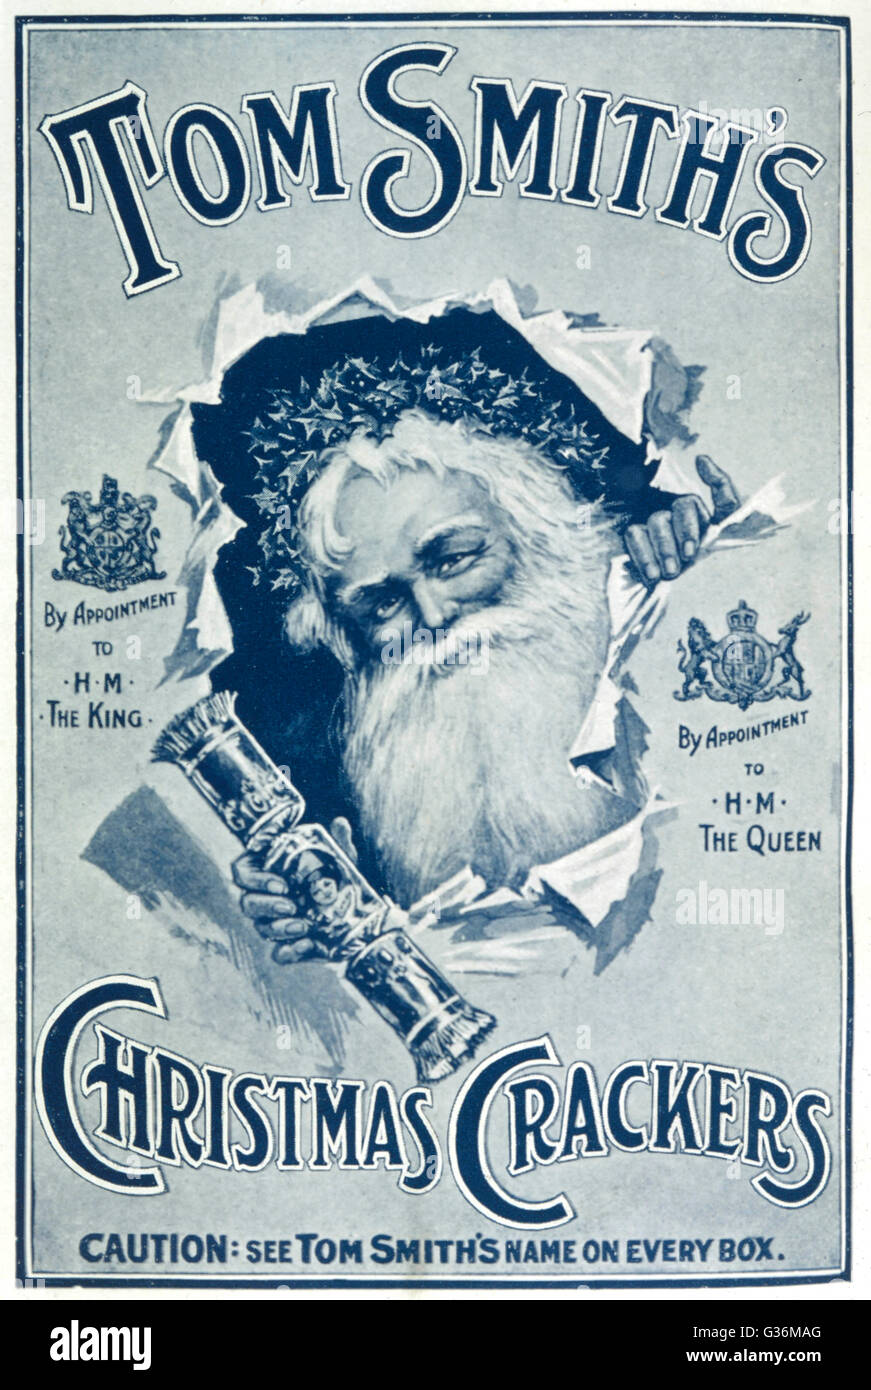 Father Christmas   Advertising Tom Smith's  crackers       Date: 1922 - Stock Image